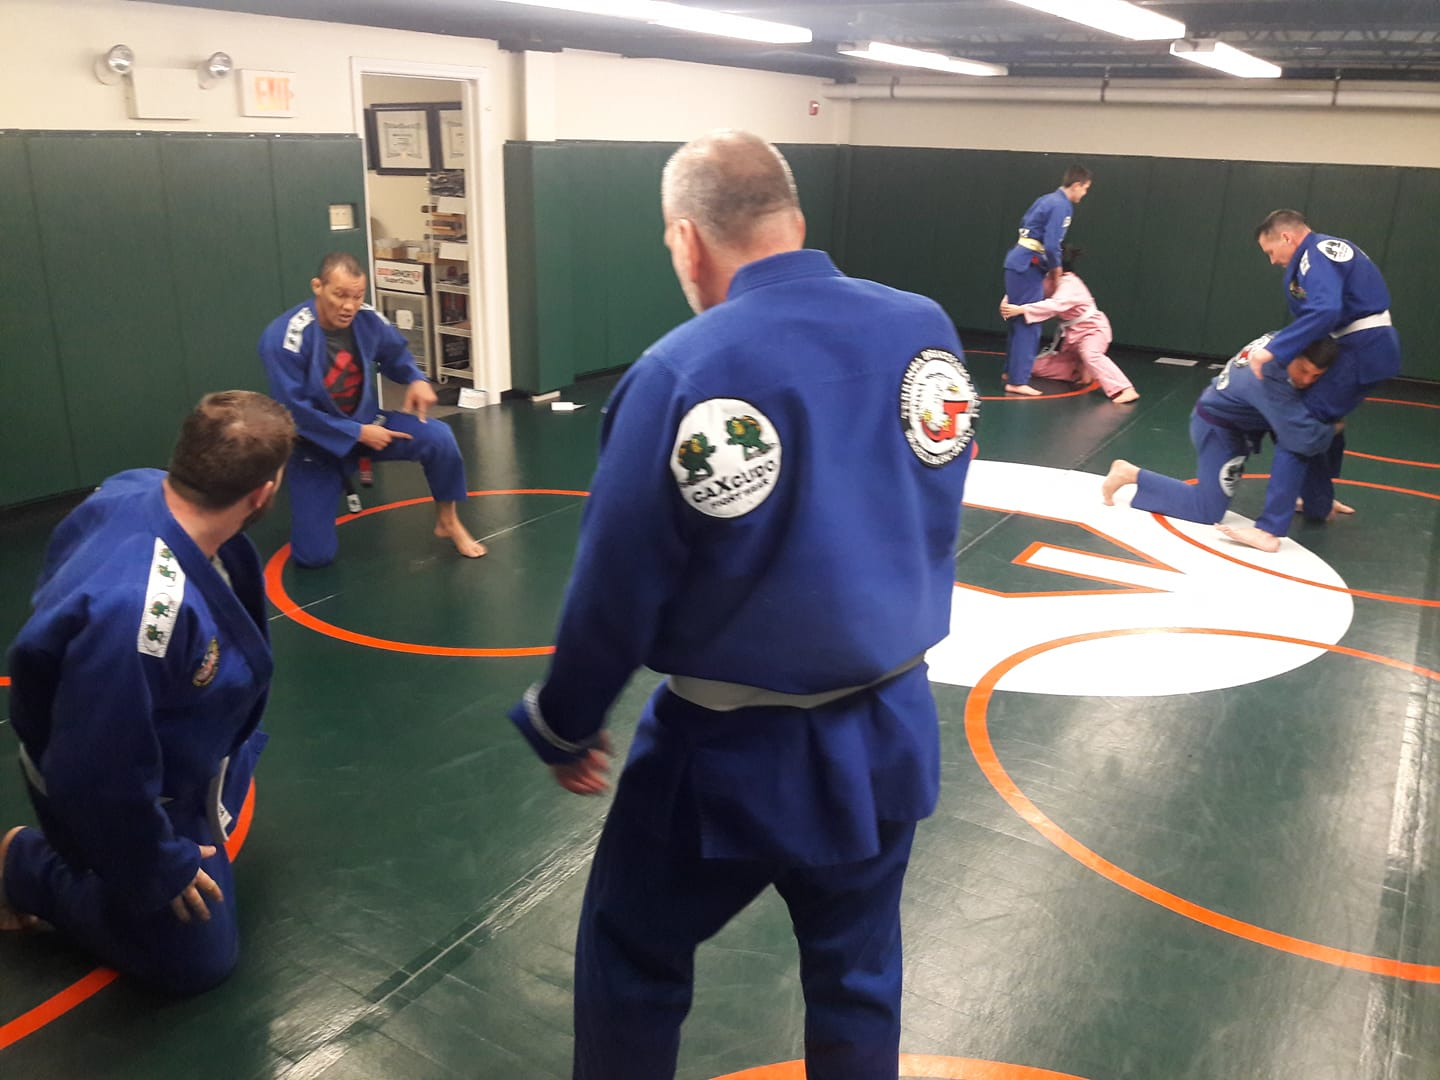 Jiu-Jitsu in Hopkinton Mass